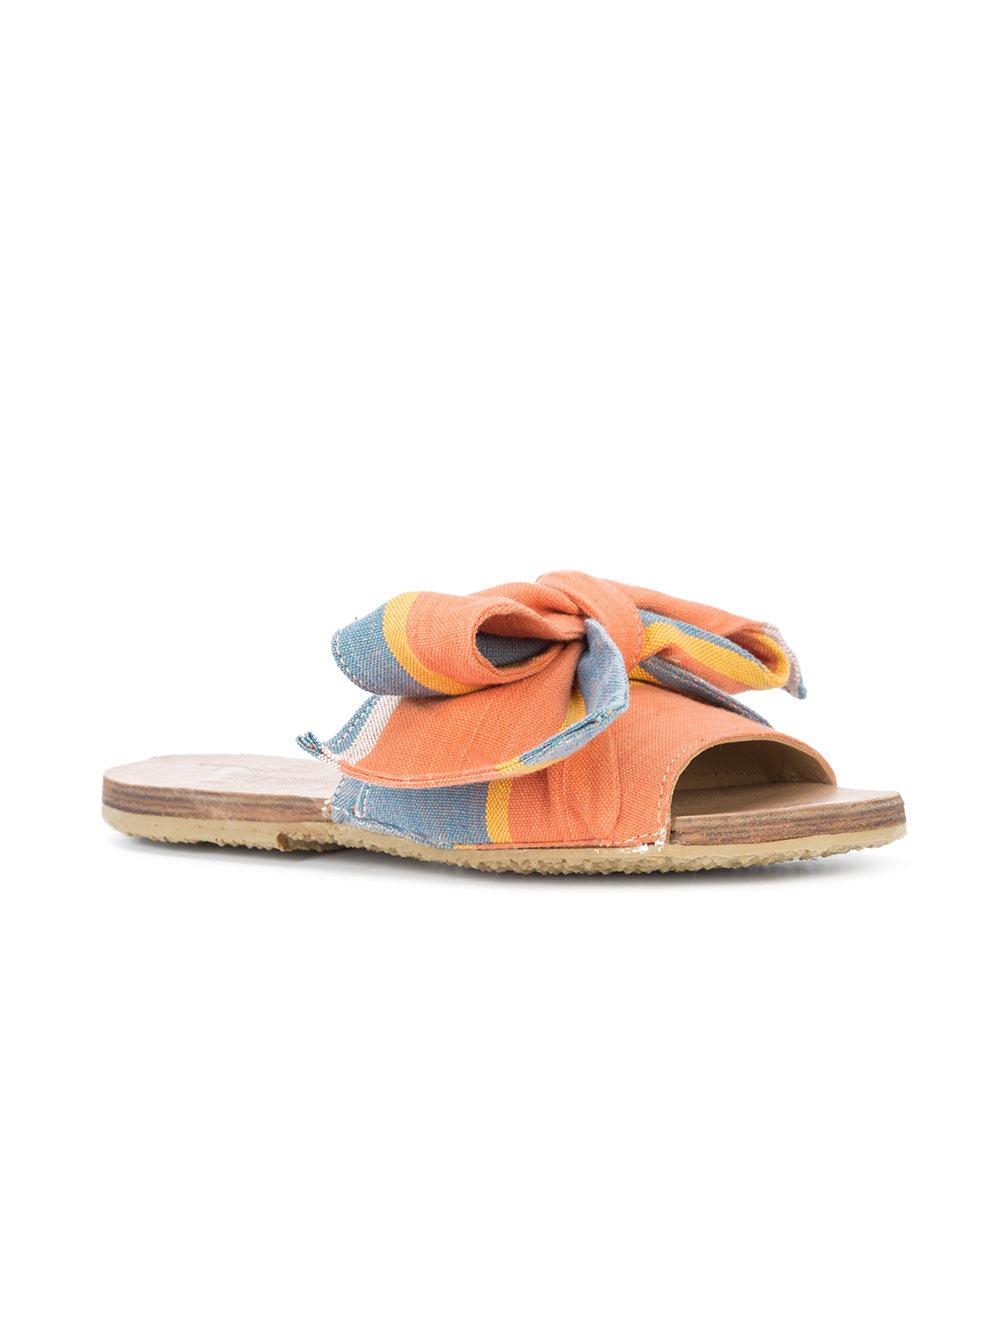 Buy Cheap Official bow open-toe sandals - Yellow & Orange Brother Vellies Best Price Discount Manchester Great Sale Real Online pTchla